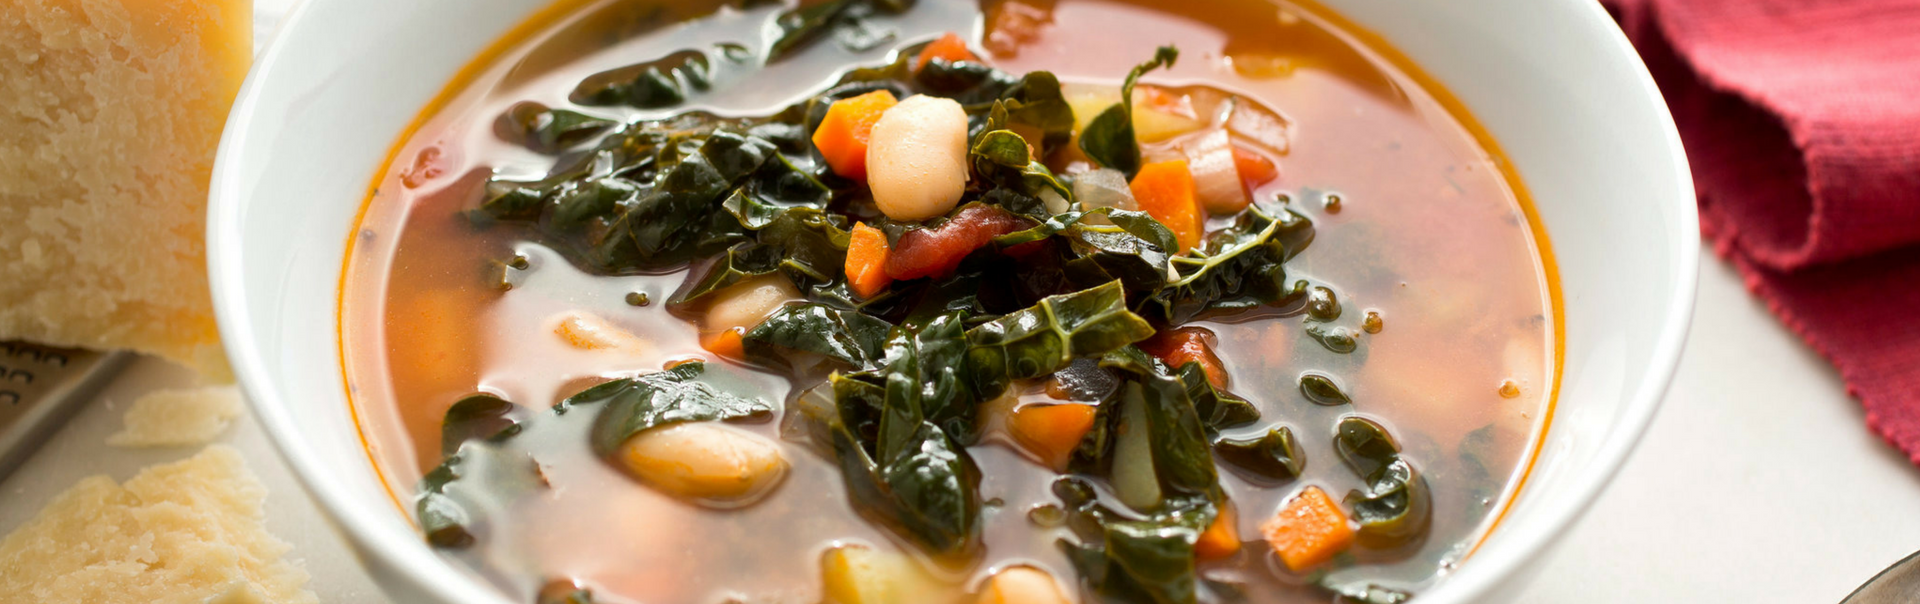 Tomato, Kale and Bean Soup